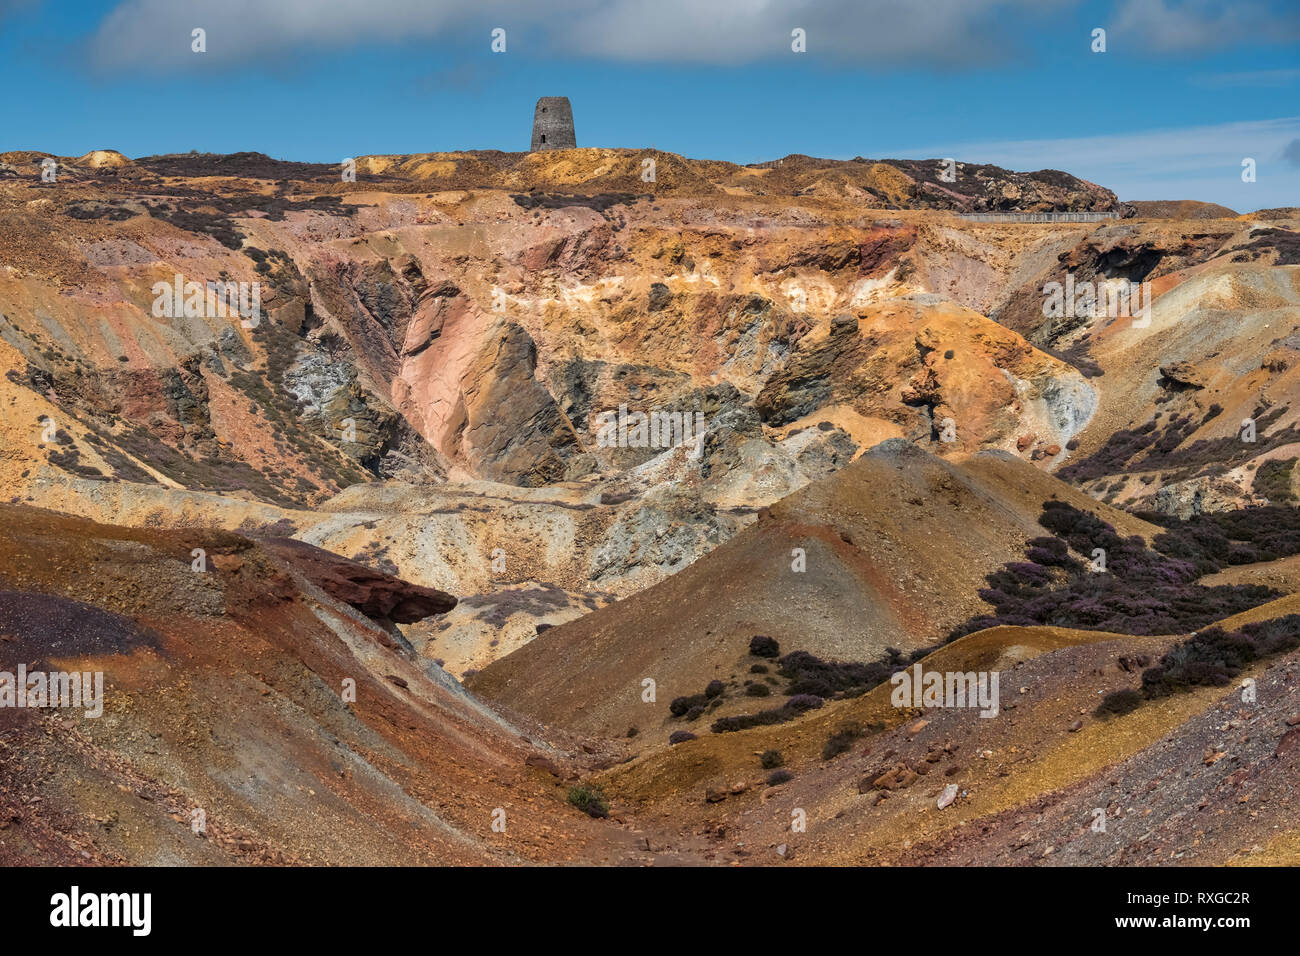 The Old Windmill at Parys Mountain abandoned Copper Mine, near Amlwch, Anglesey, North Wales, UK - Stock Image